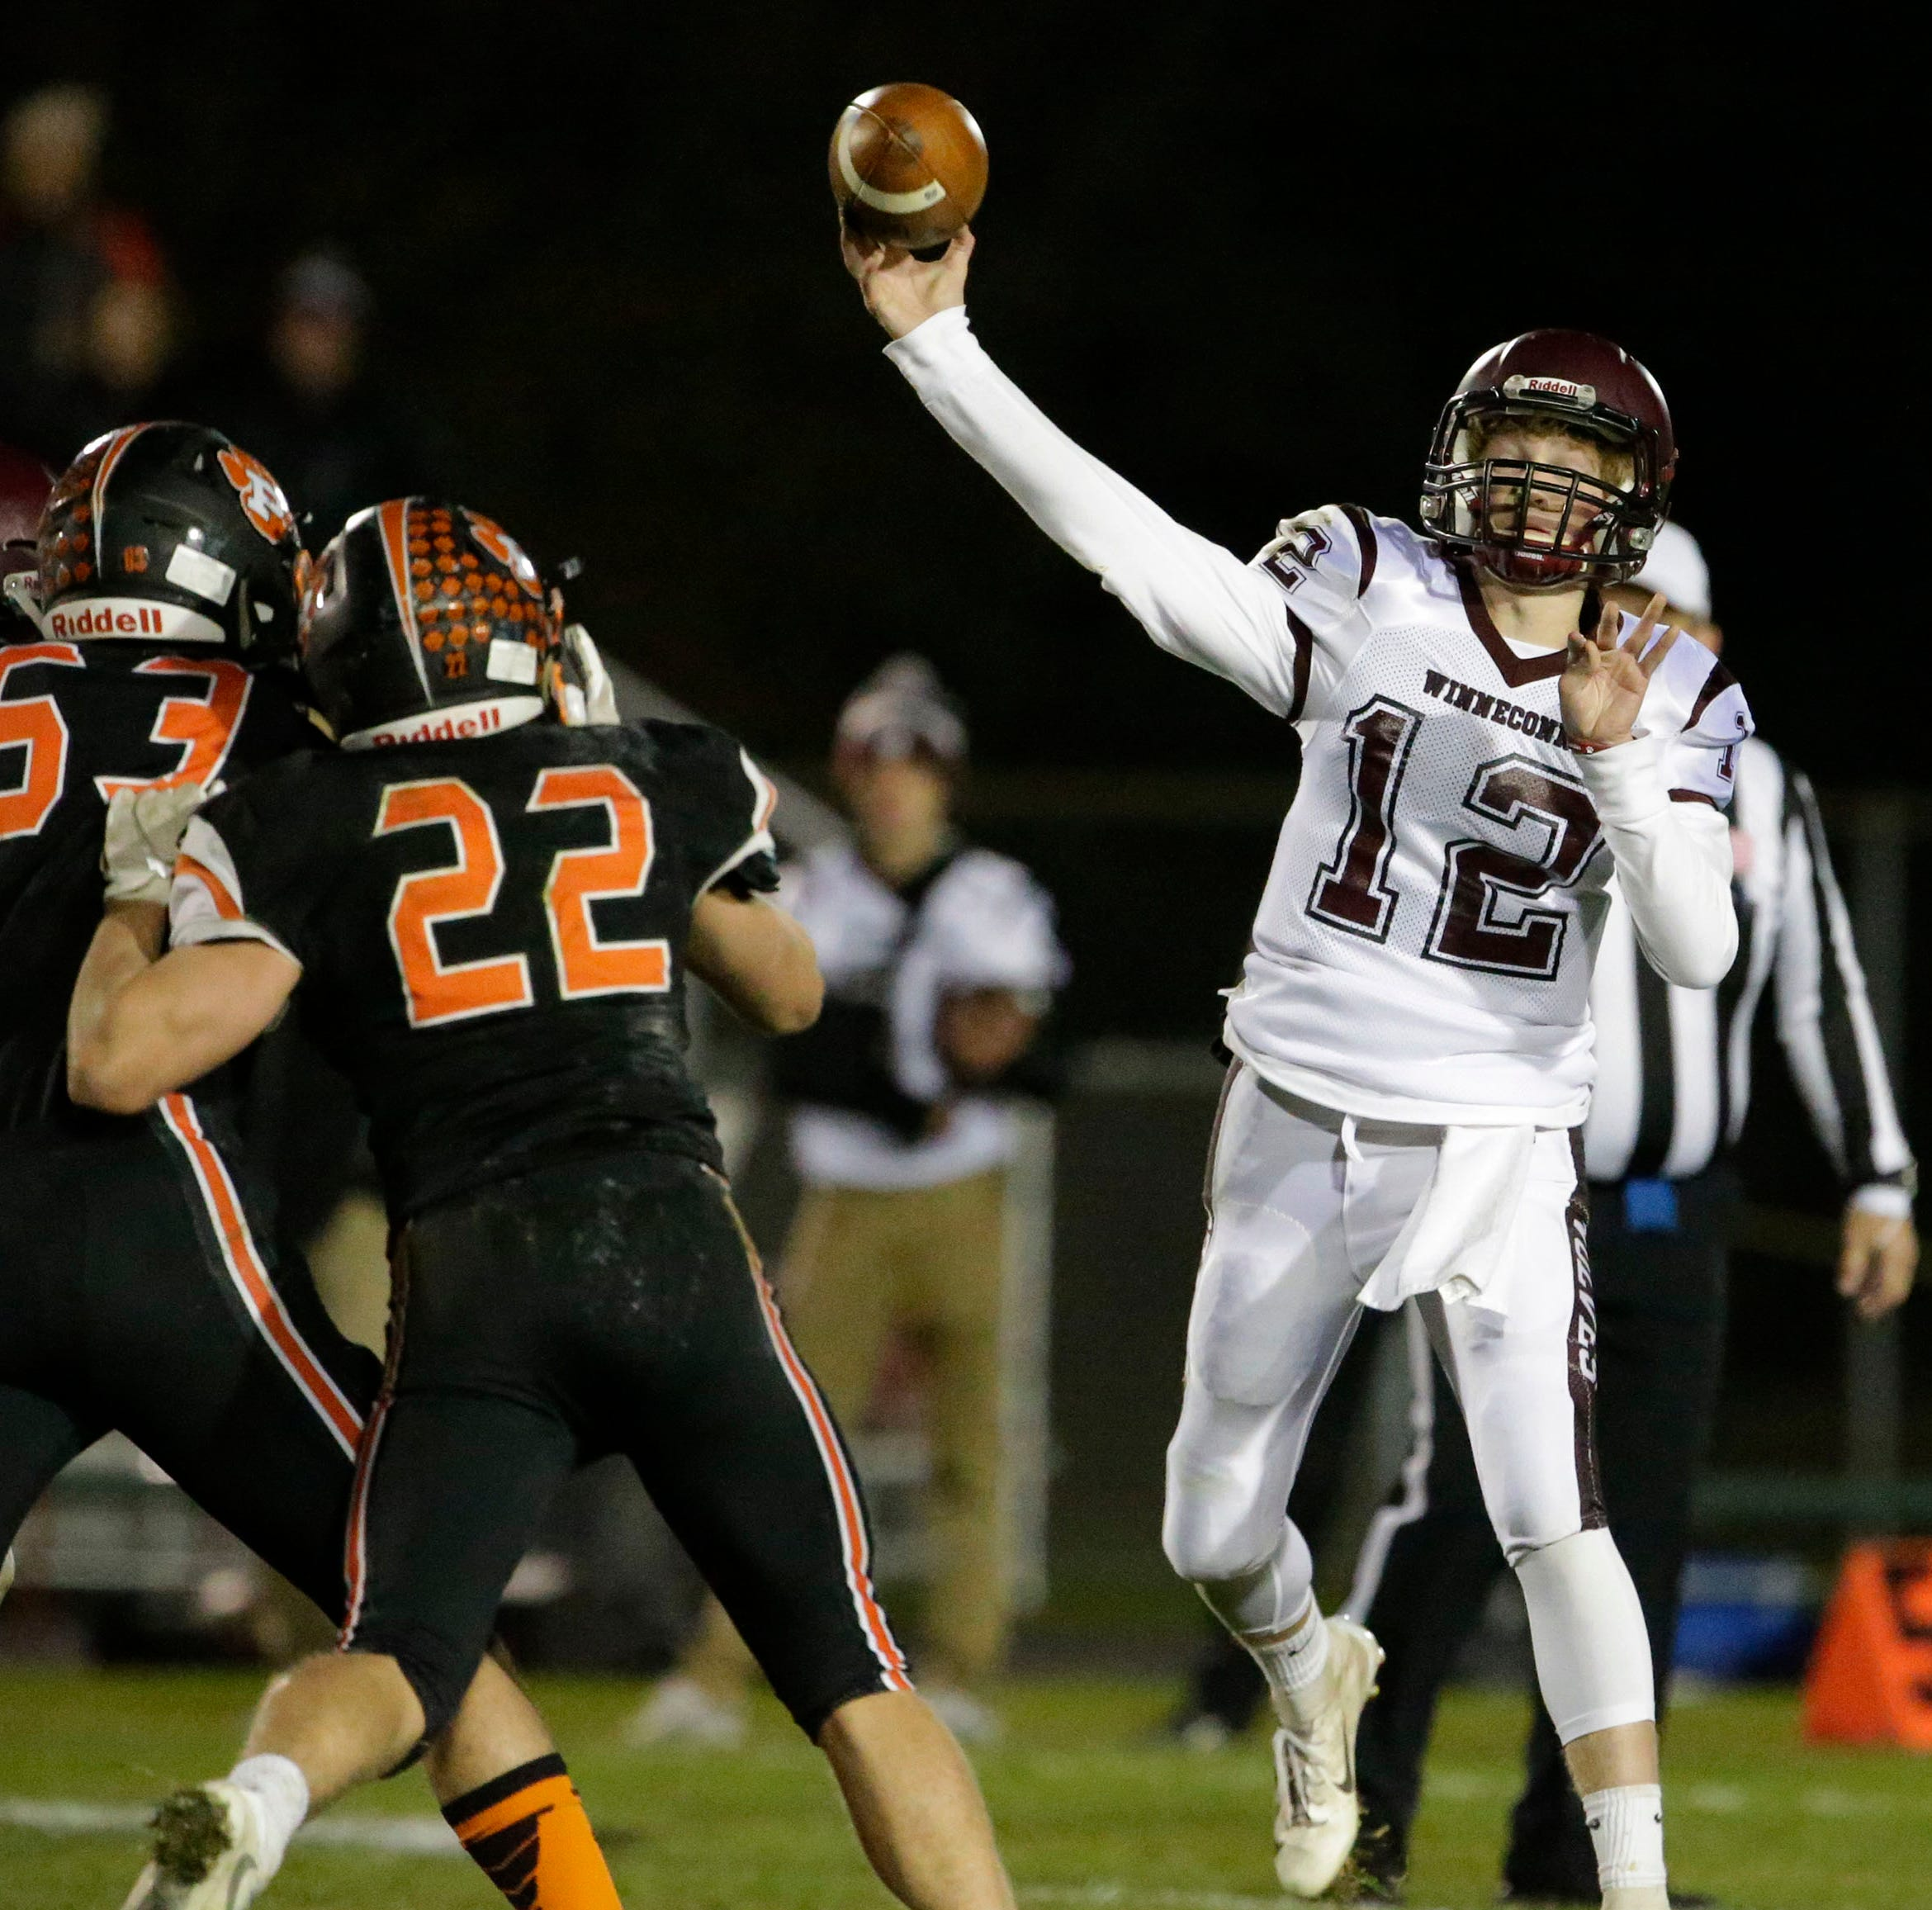 High school football: Four teams from East Central Conference in WIAA playoffs Friday